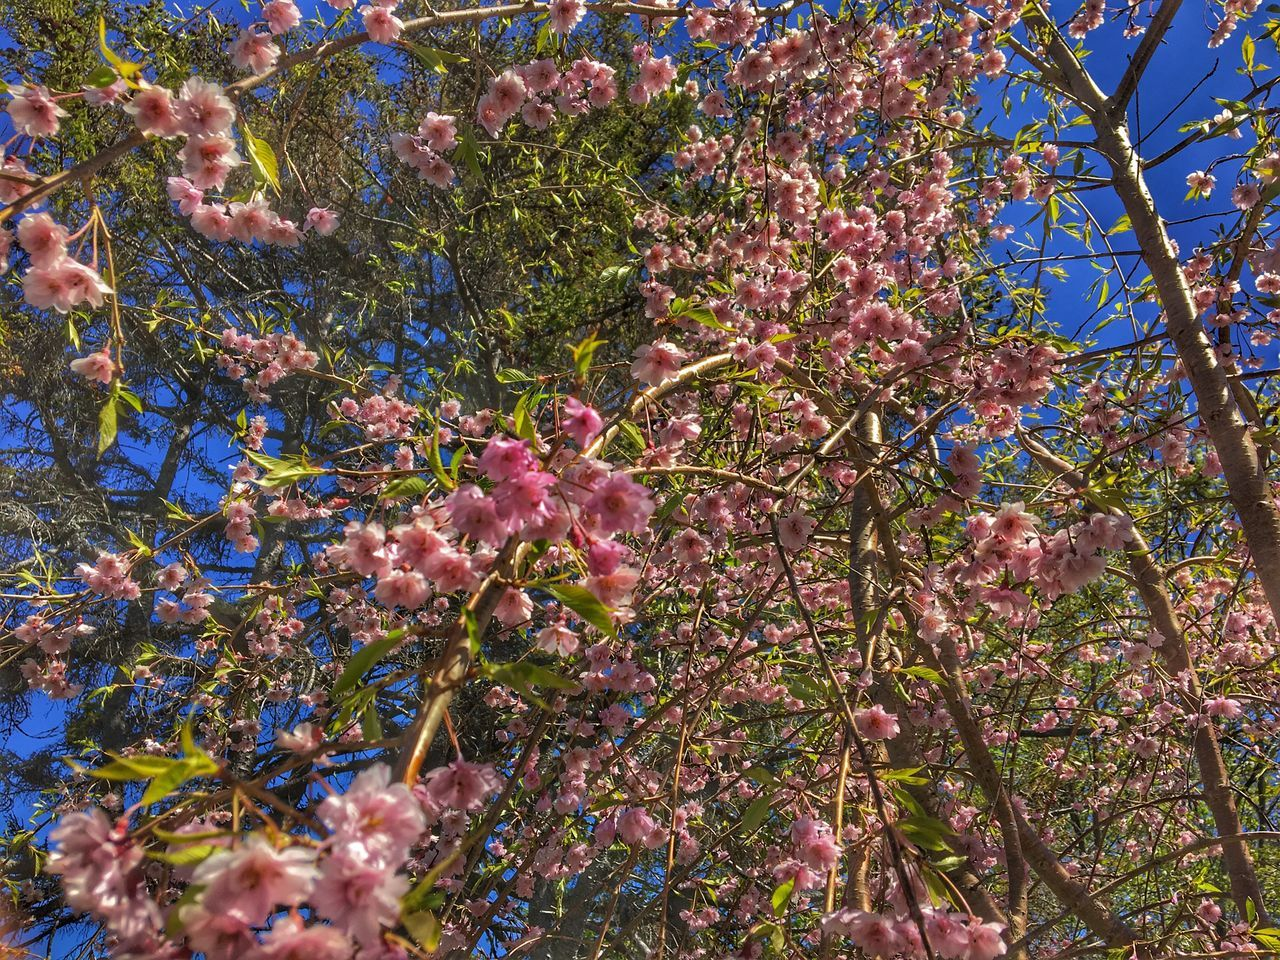 Day Outdoors No People Beauty In Nature Nature Tree Freshness Low Angle View Springtime Fragility Branch Leaf Blossom Flower Growth Flower Head Petal Tranquil Scene Scenics Leaves